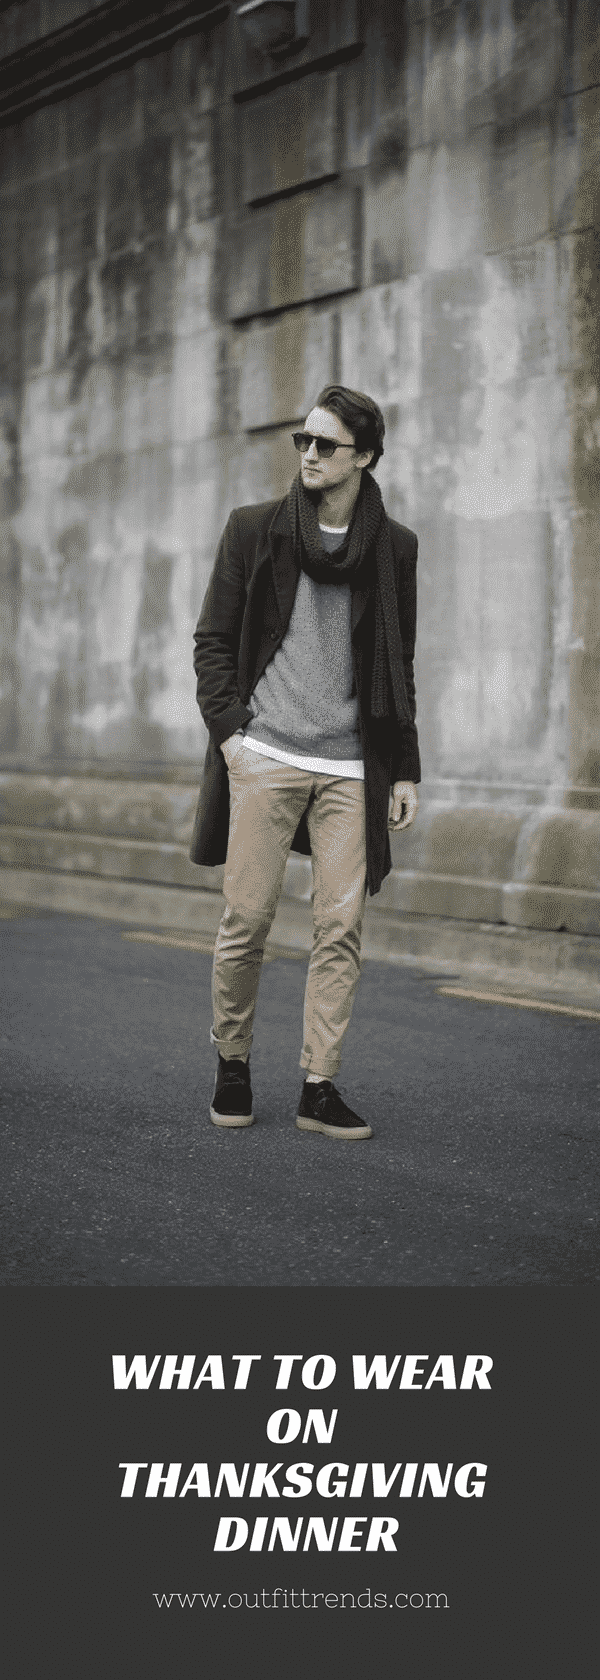 what-to-wear-on-thanksgiving-dinner-2 2018 Men's Thanksgiving Outfits-30 Ways to Dress on Thanksgiving